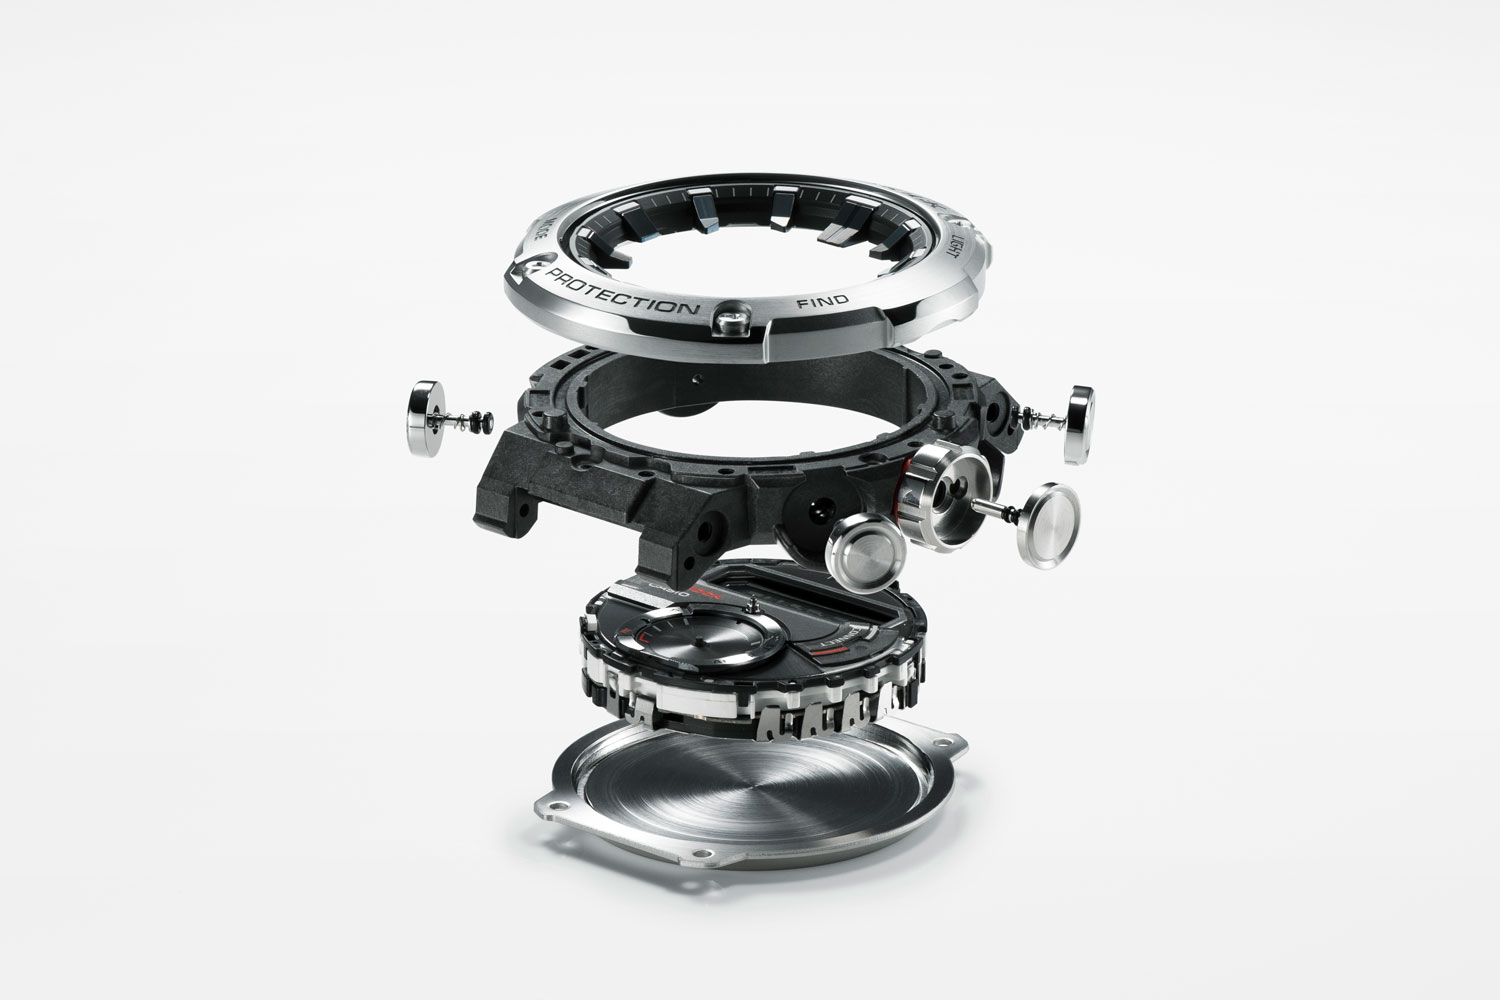 Casio's new shock resistant structure that protects the time modules inside with a carbon fiber reinforced resin case